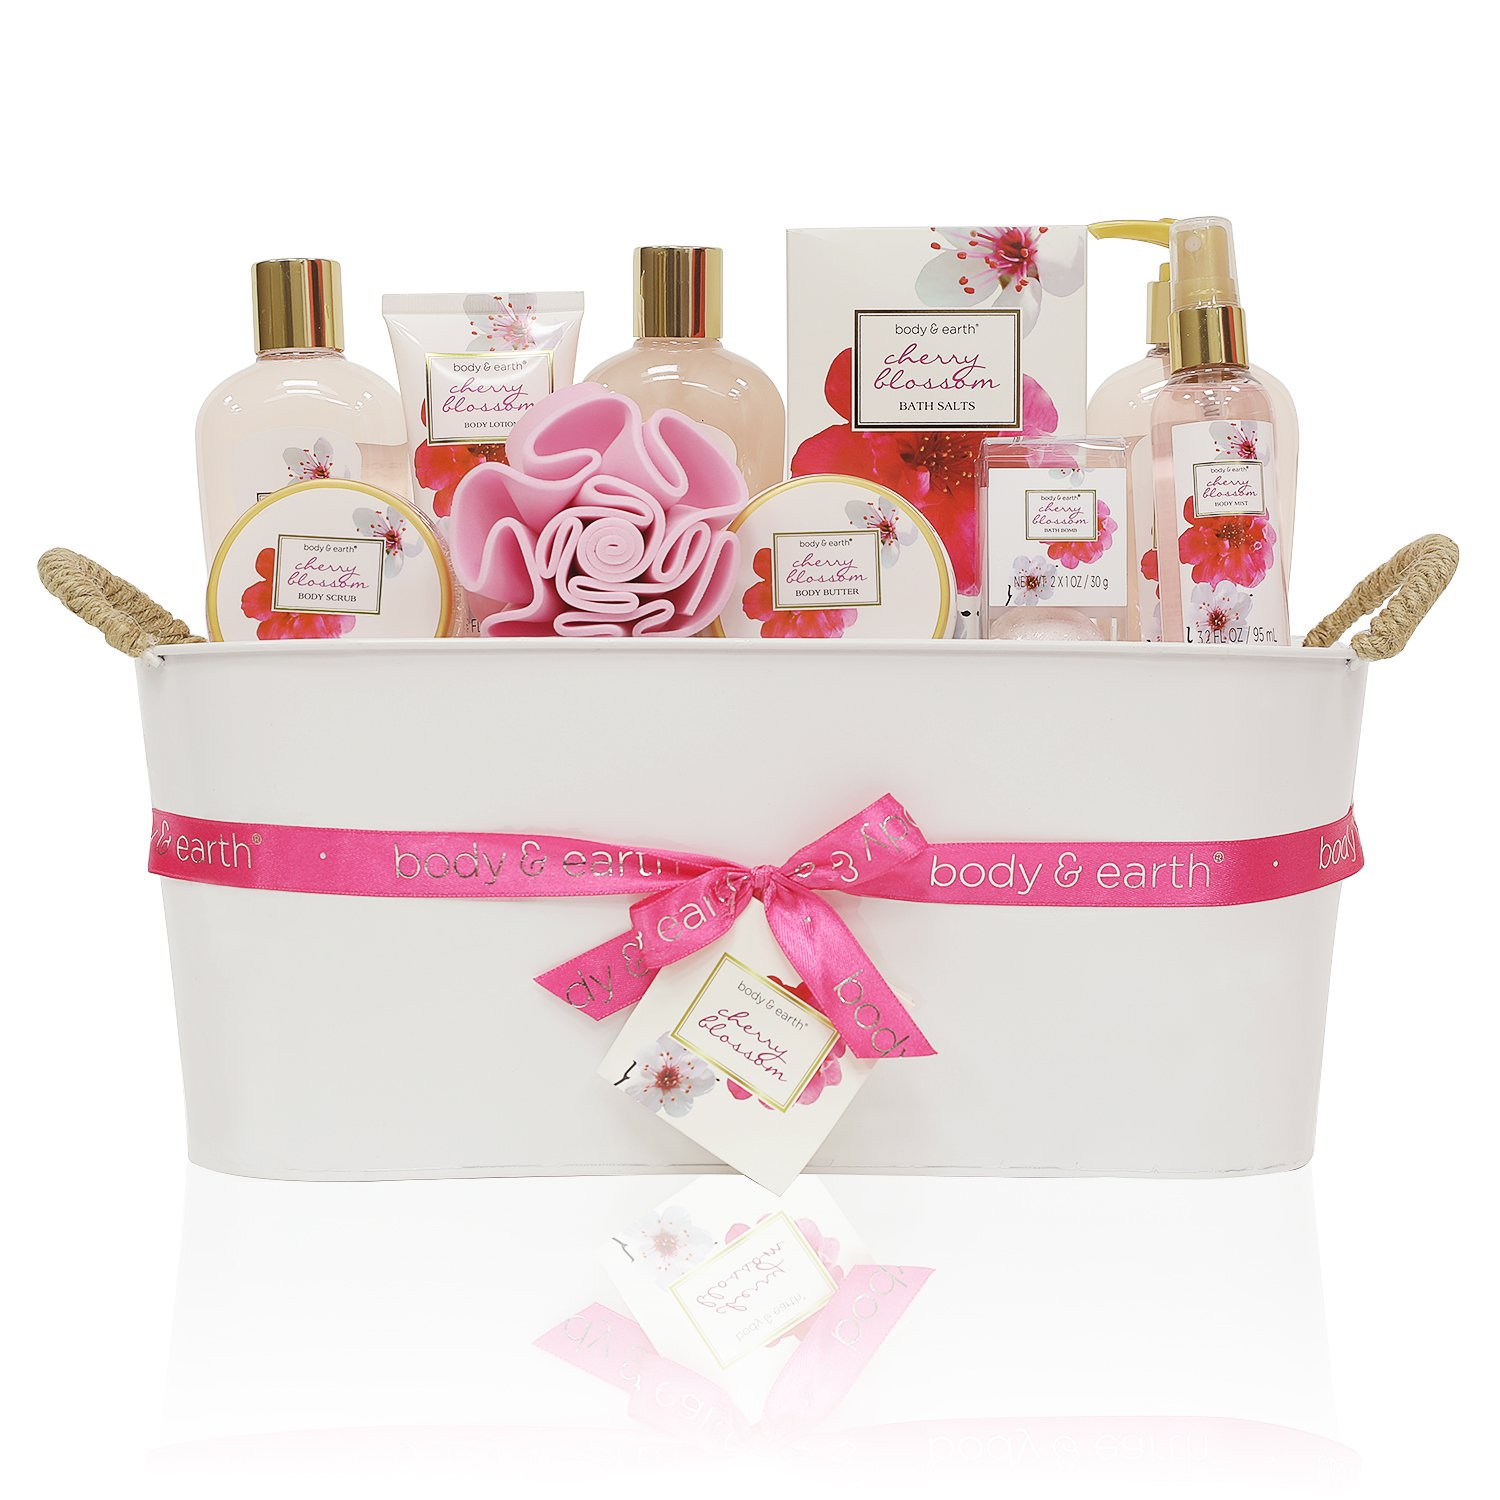 Amazon.com : Gift Baskets for Women, Body & Earth Spa Gifts for Her ...